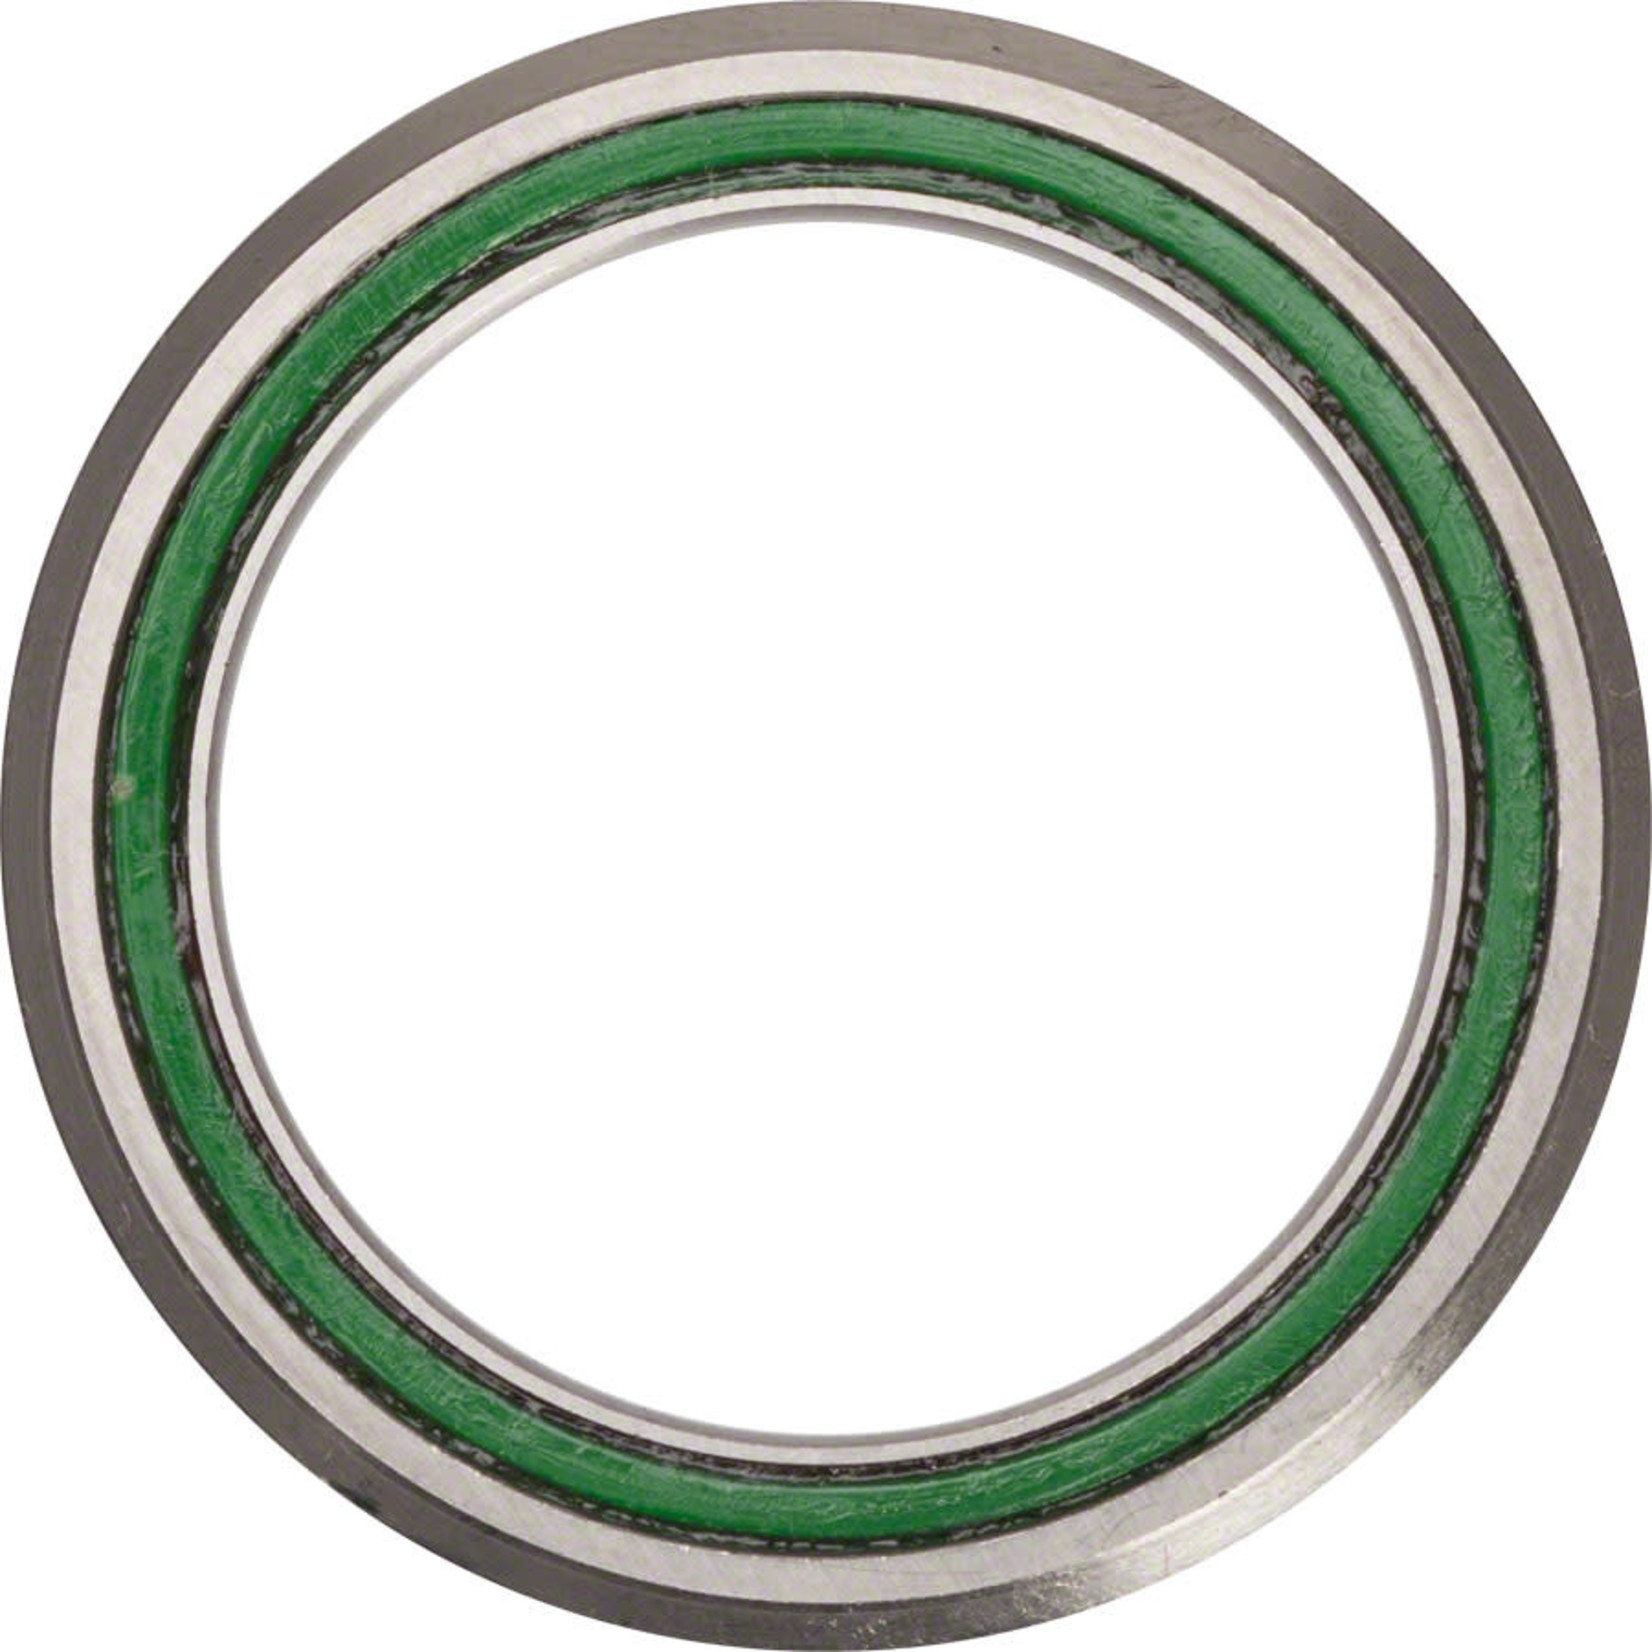 """Wheels Manufacturing Wheels Manufacturing 1-1/8"""" 36 x 45 degree Stainless Steel Angular Contact Bearing 30.2mm ID x 41mm OD"""